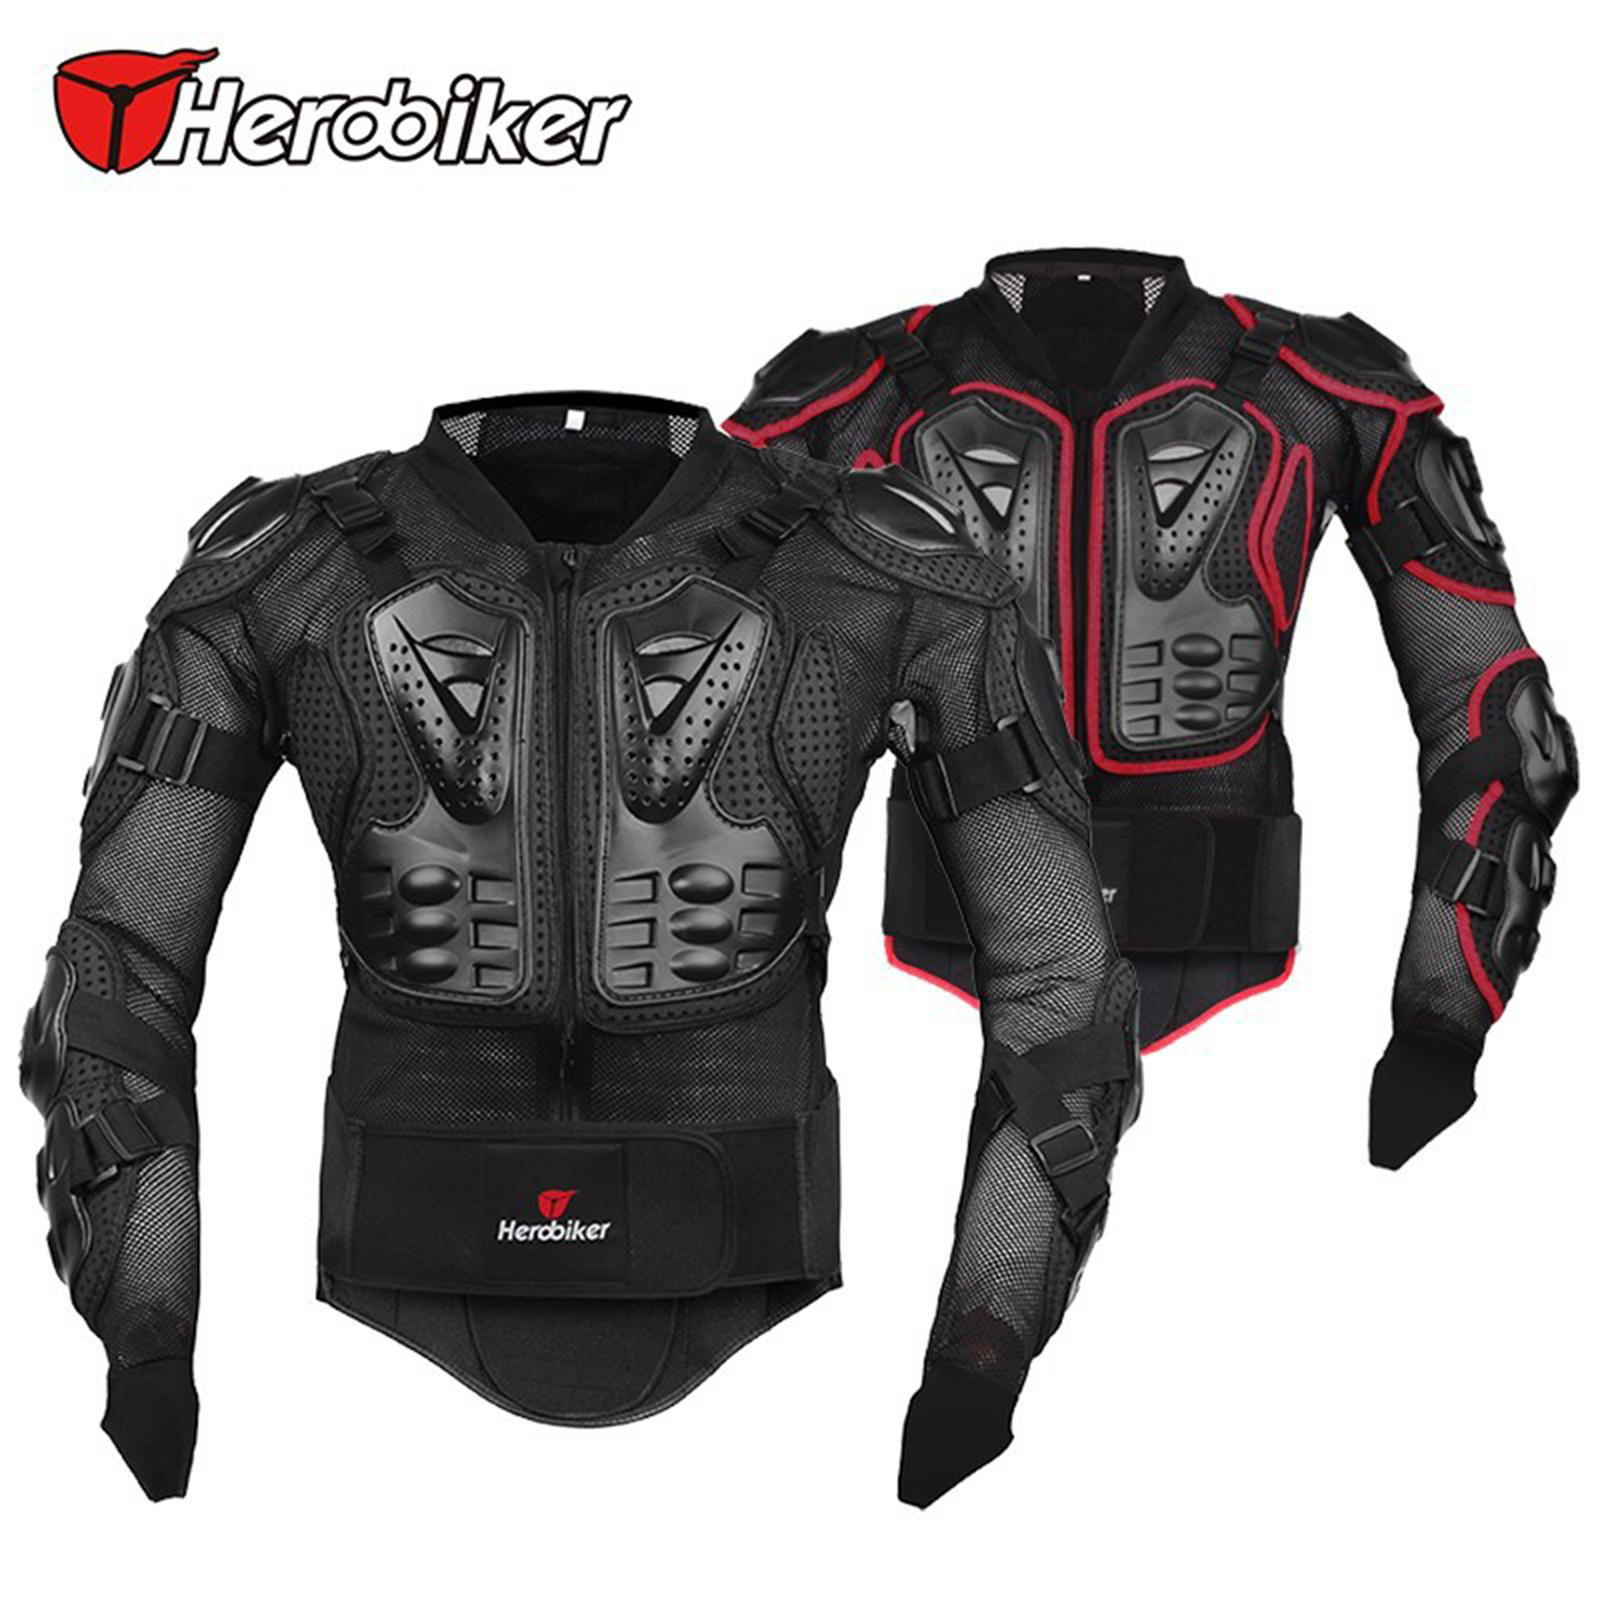 Motorcycle Jacket Men Full Body Motorcycle Armor Motocross Racing Protective Gear Motorcycle Protection Size S-3XL